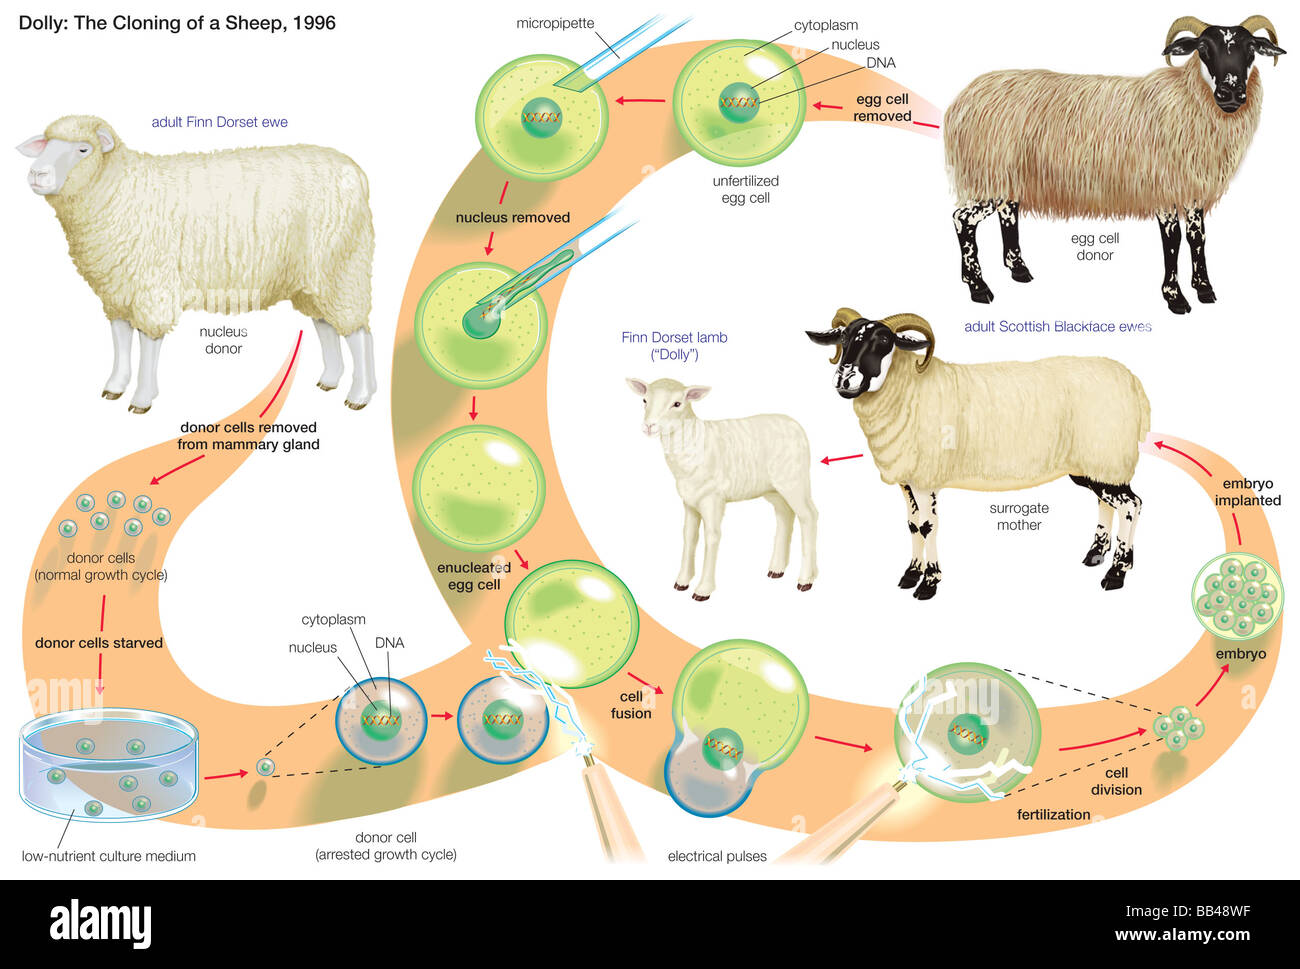 the biological and genetical process of cloning sheep Cloning in biology is the process of producing genetically identical individuals, or the creation of a copy, which means that clones have been occurring in nature for years - with twins by those standards, the first cloned animal was created in 1885.